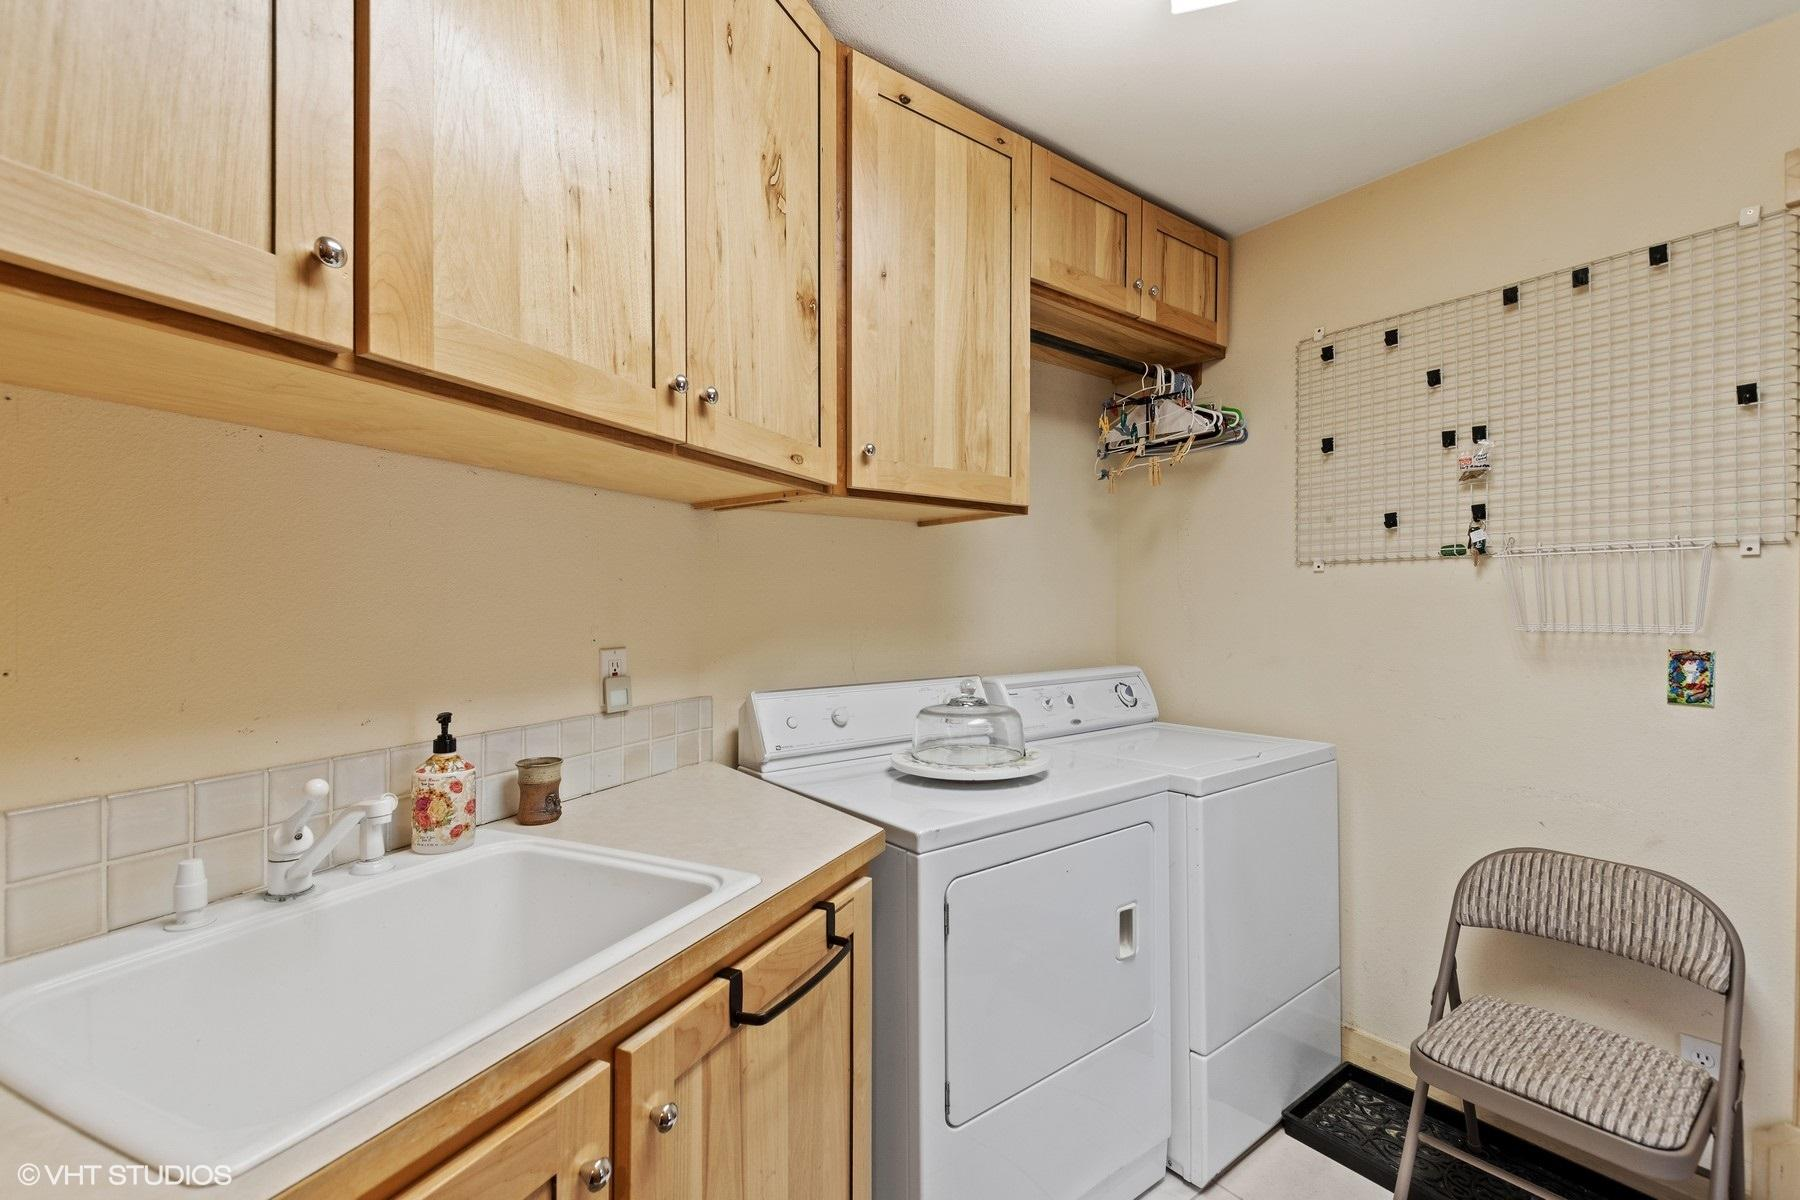 Full laundry room with cabinets and sink